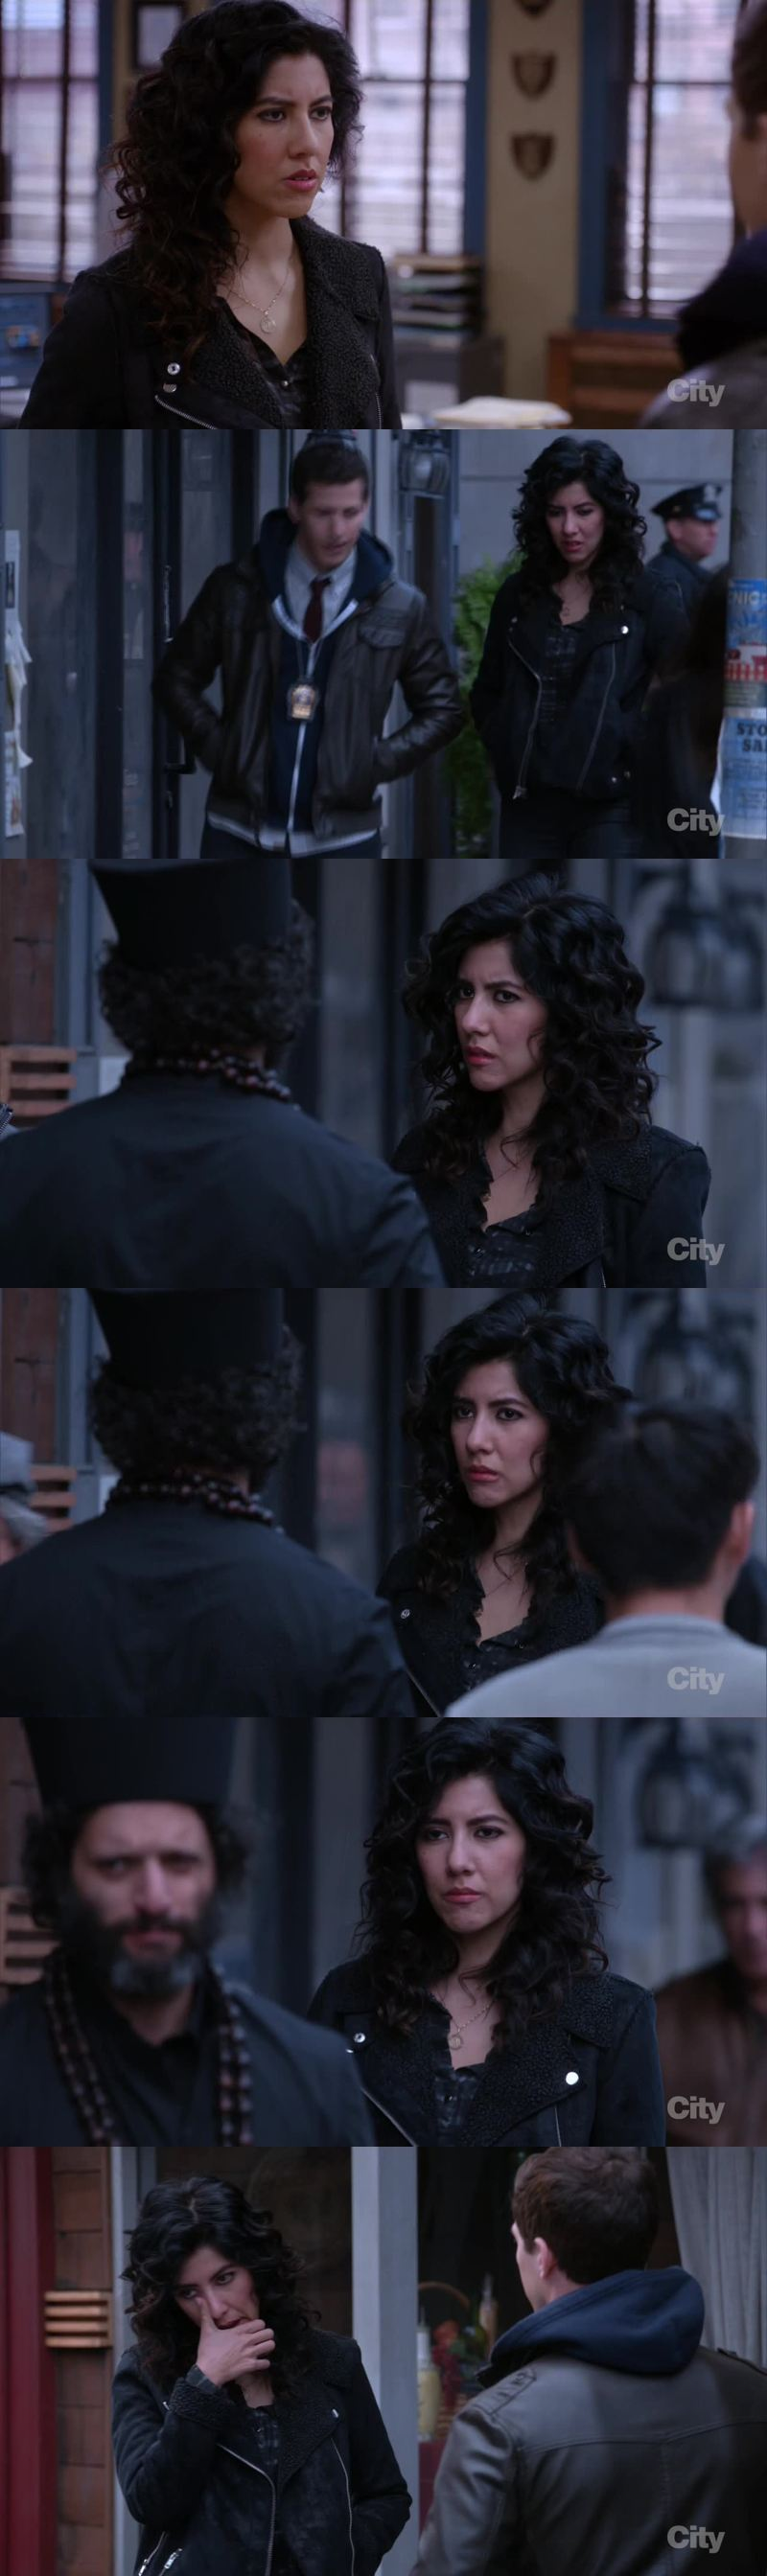 Rosa sad and crying is NOT something that I like to see. NO.